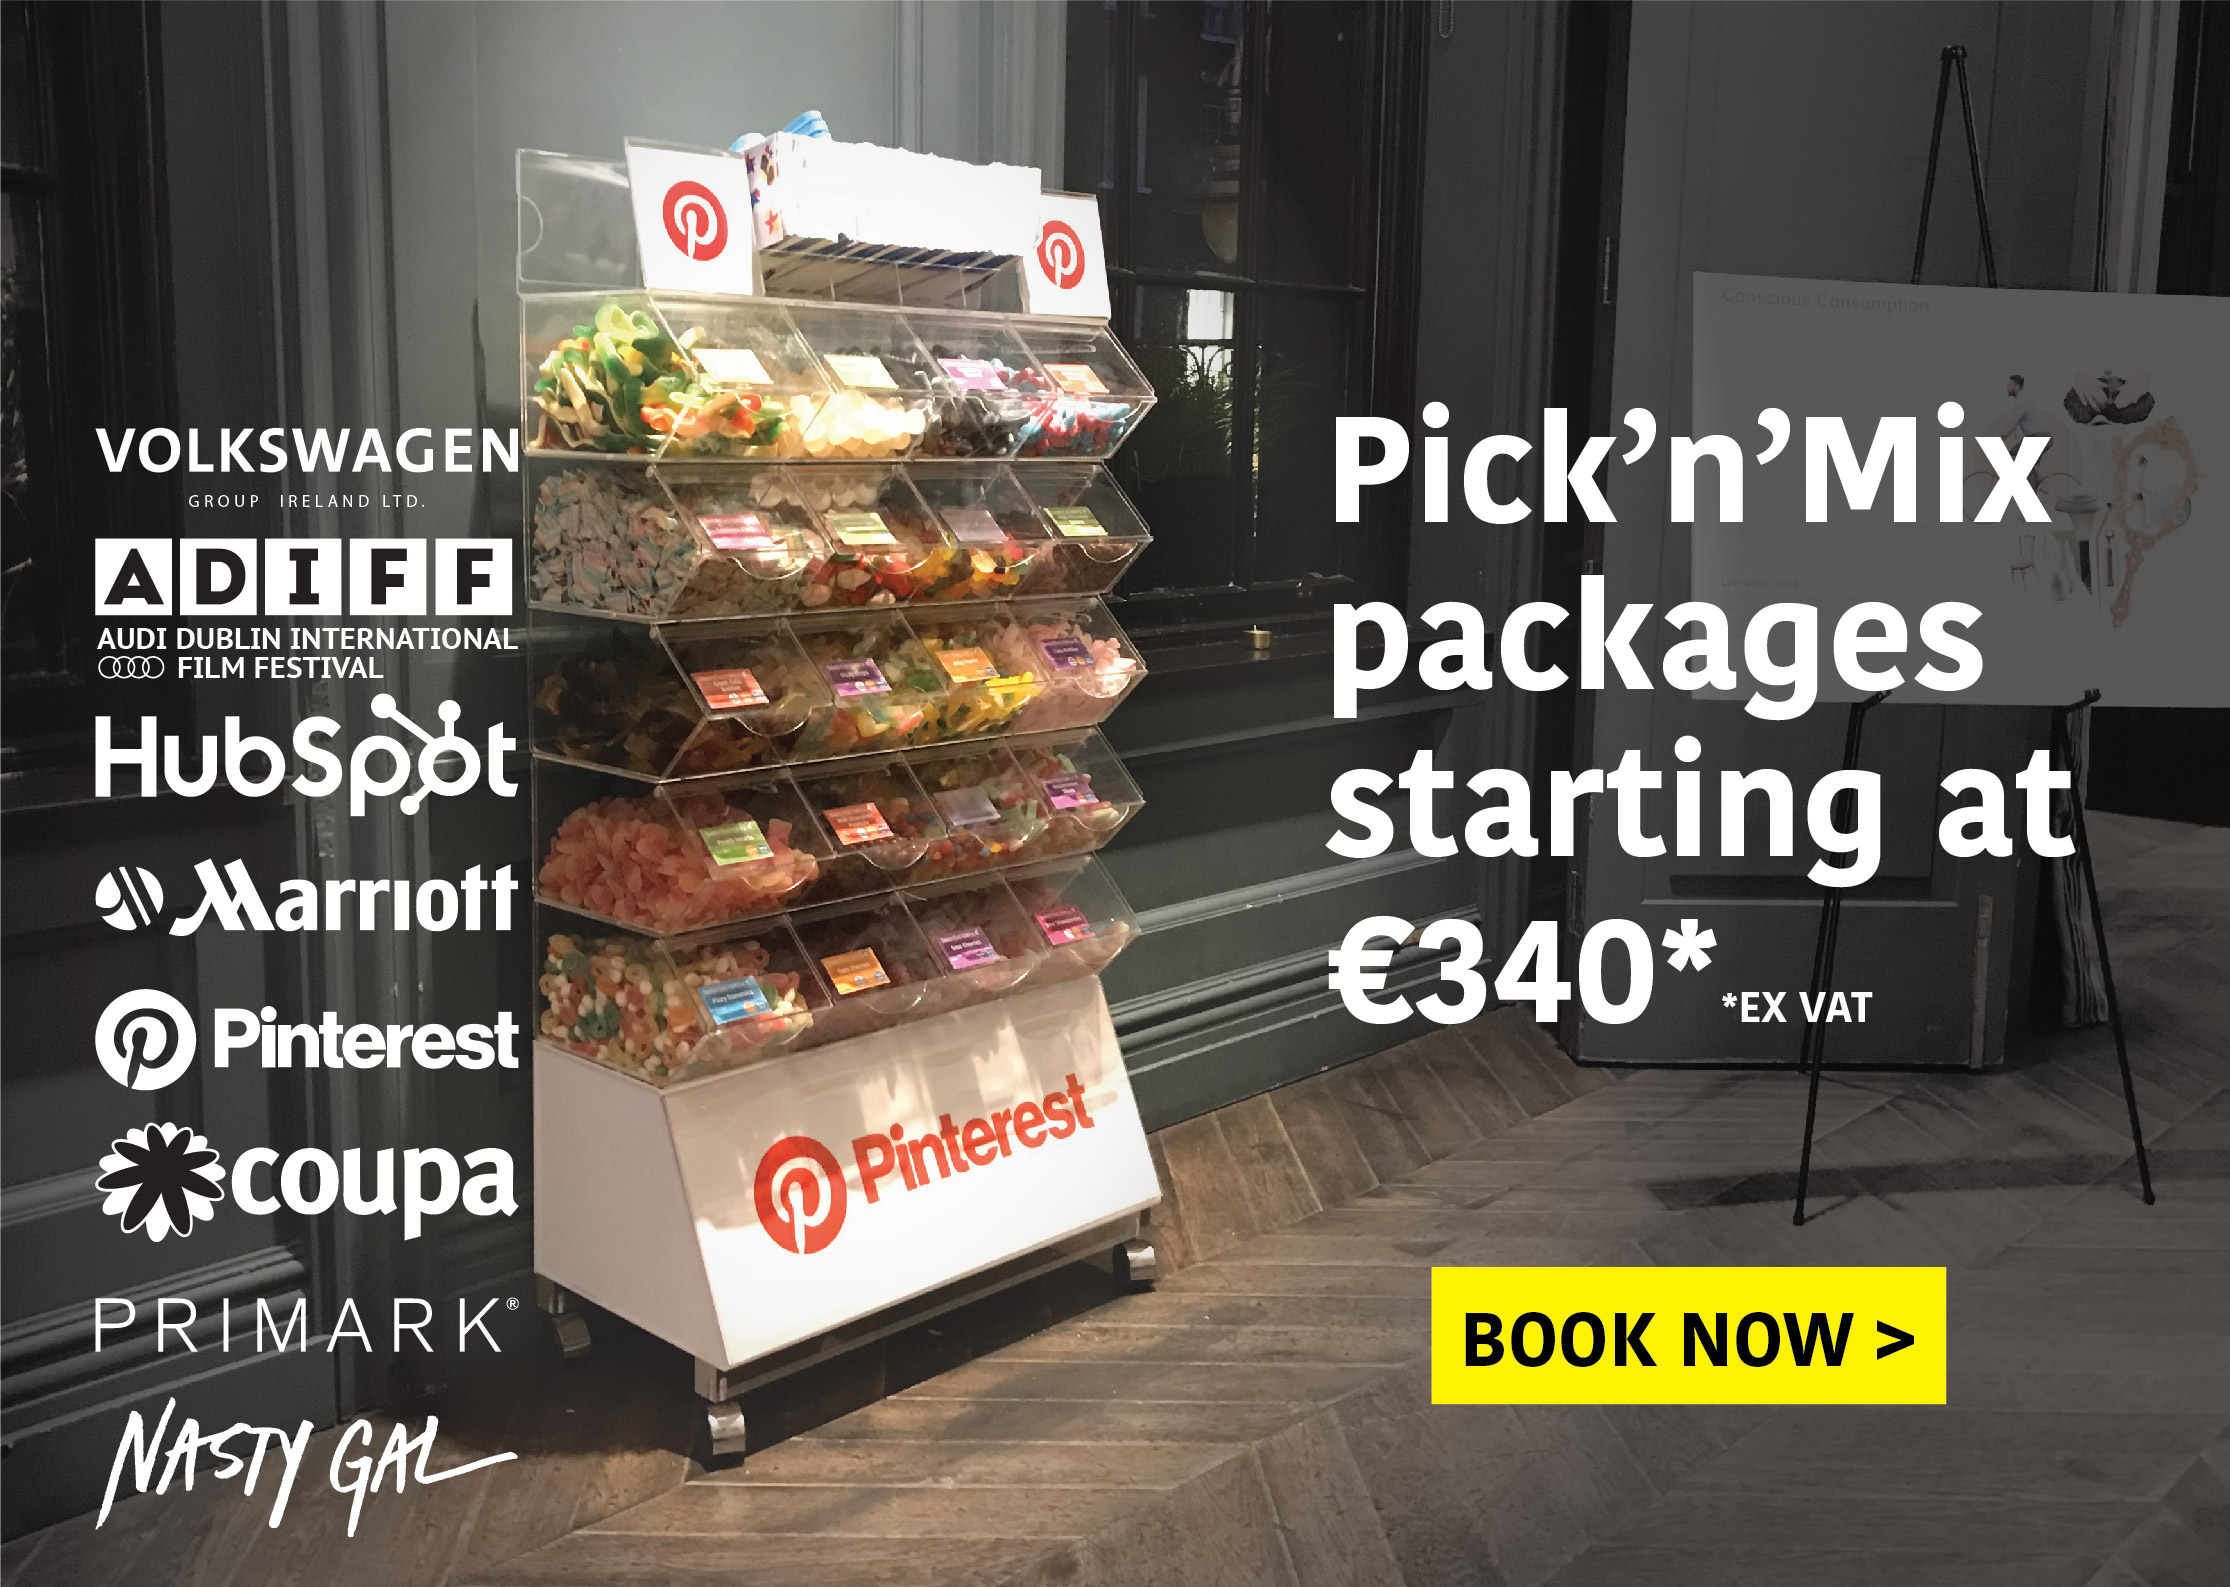 Pick'n'mix Packages